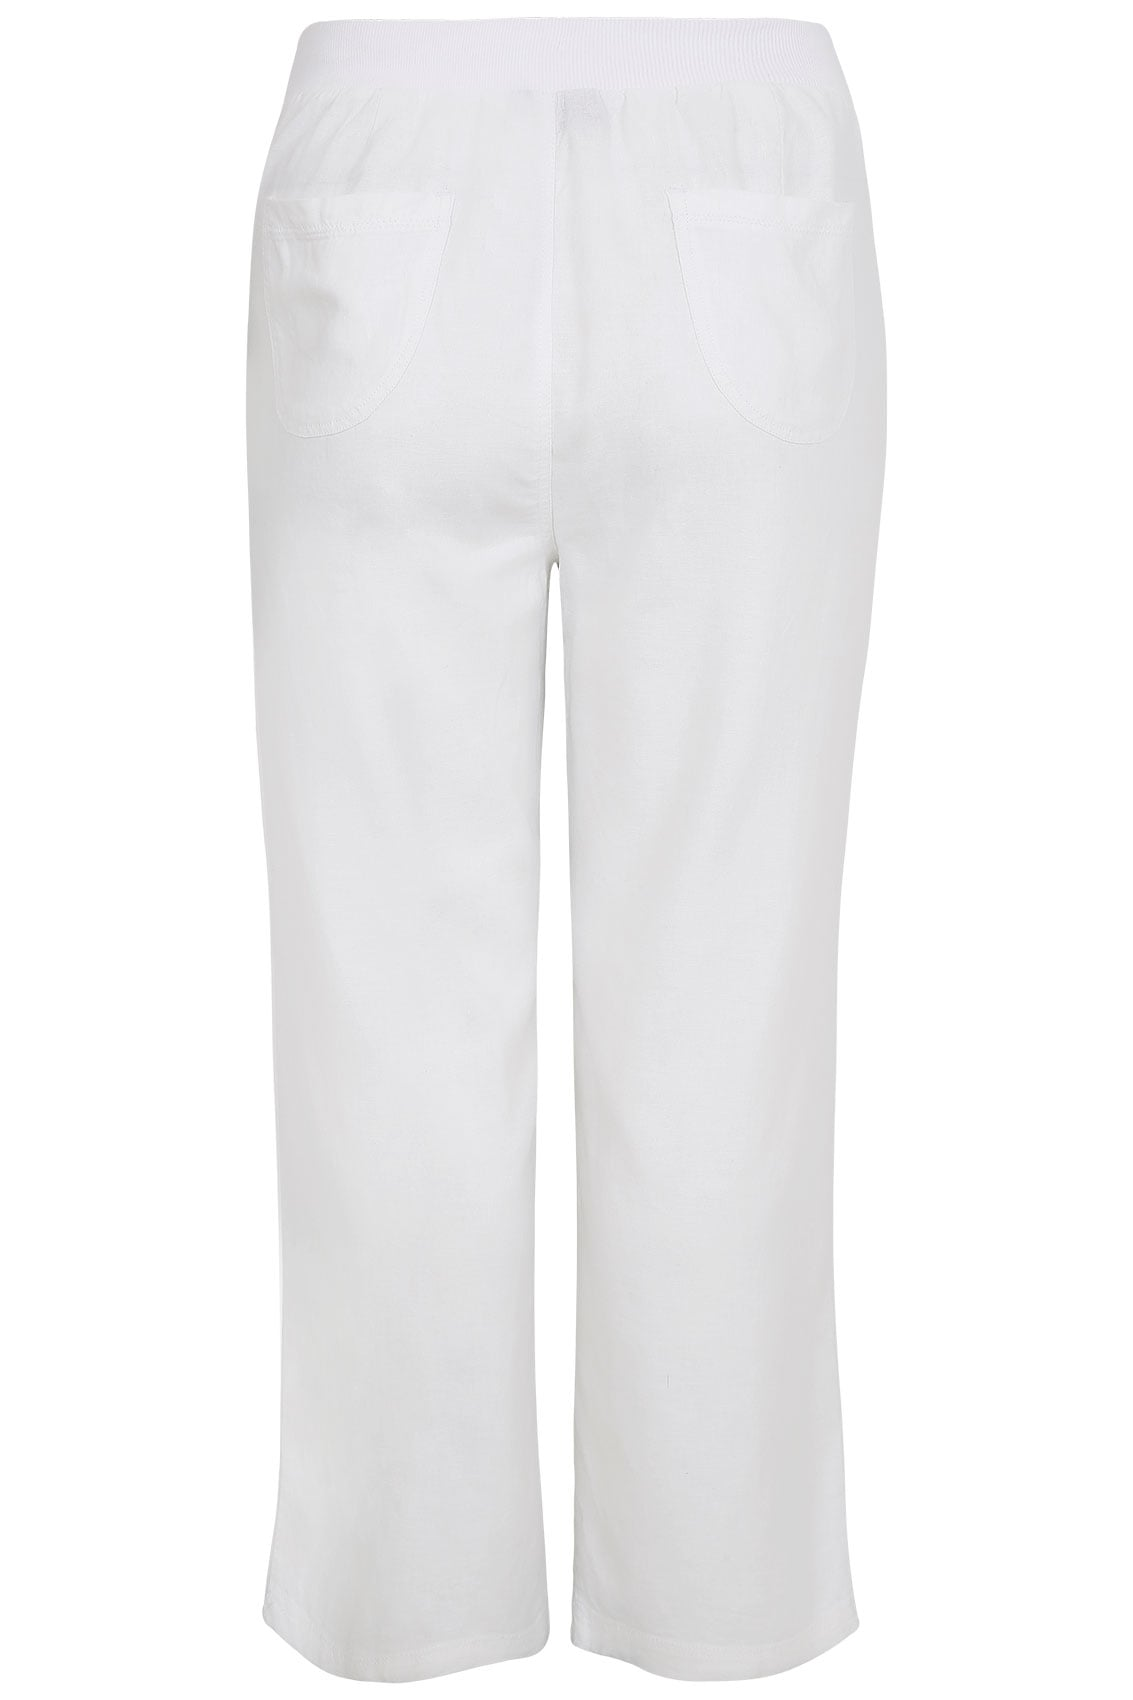 Wide Leg Pants Women White Cotton Linen pants Long Casual Drawstring harem Trousers Loose summer pantalon. White Pants – Wide Leg Pants Cotton Linen Casual Wear: Soul of the Orient Collection. Wide-Leg Linen Pants. Gallery. Women's Eileen Fisher Wide Leg Organic Linen Pants, Size Small – White.